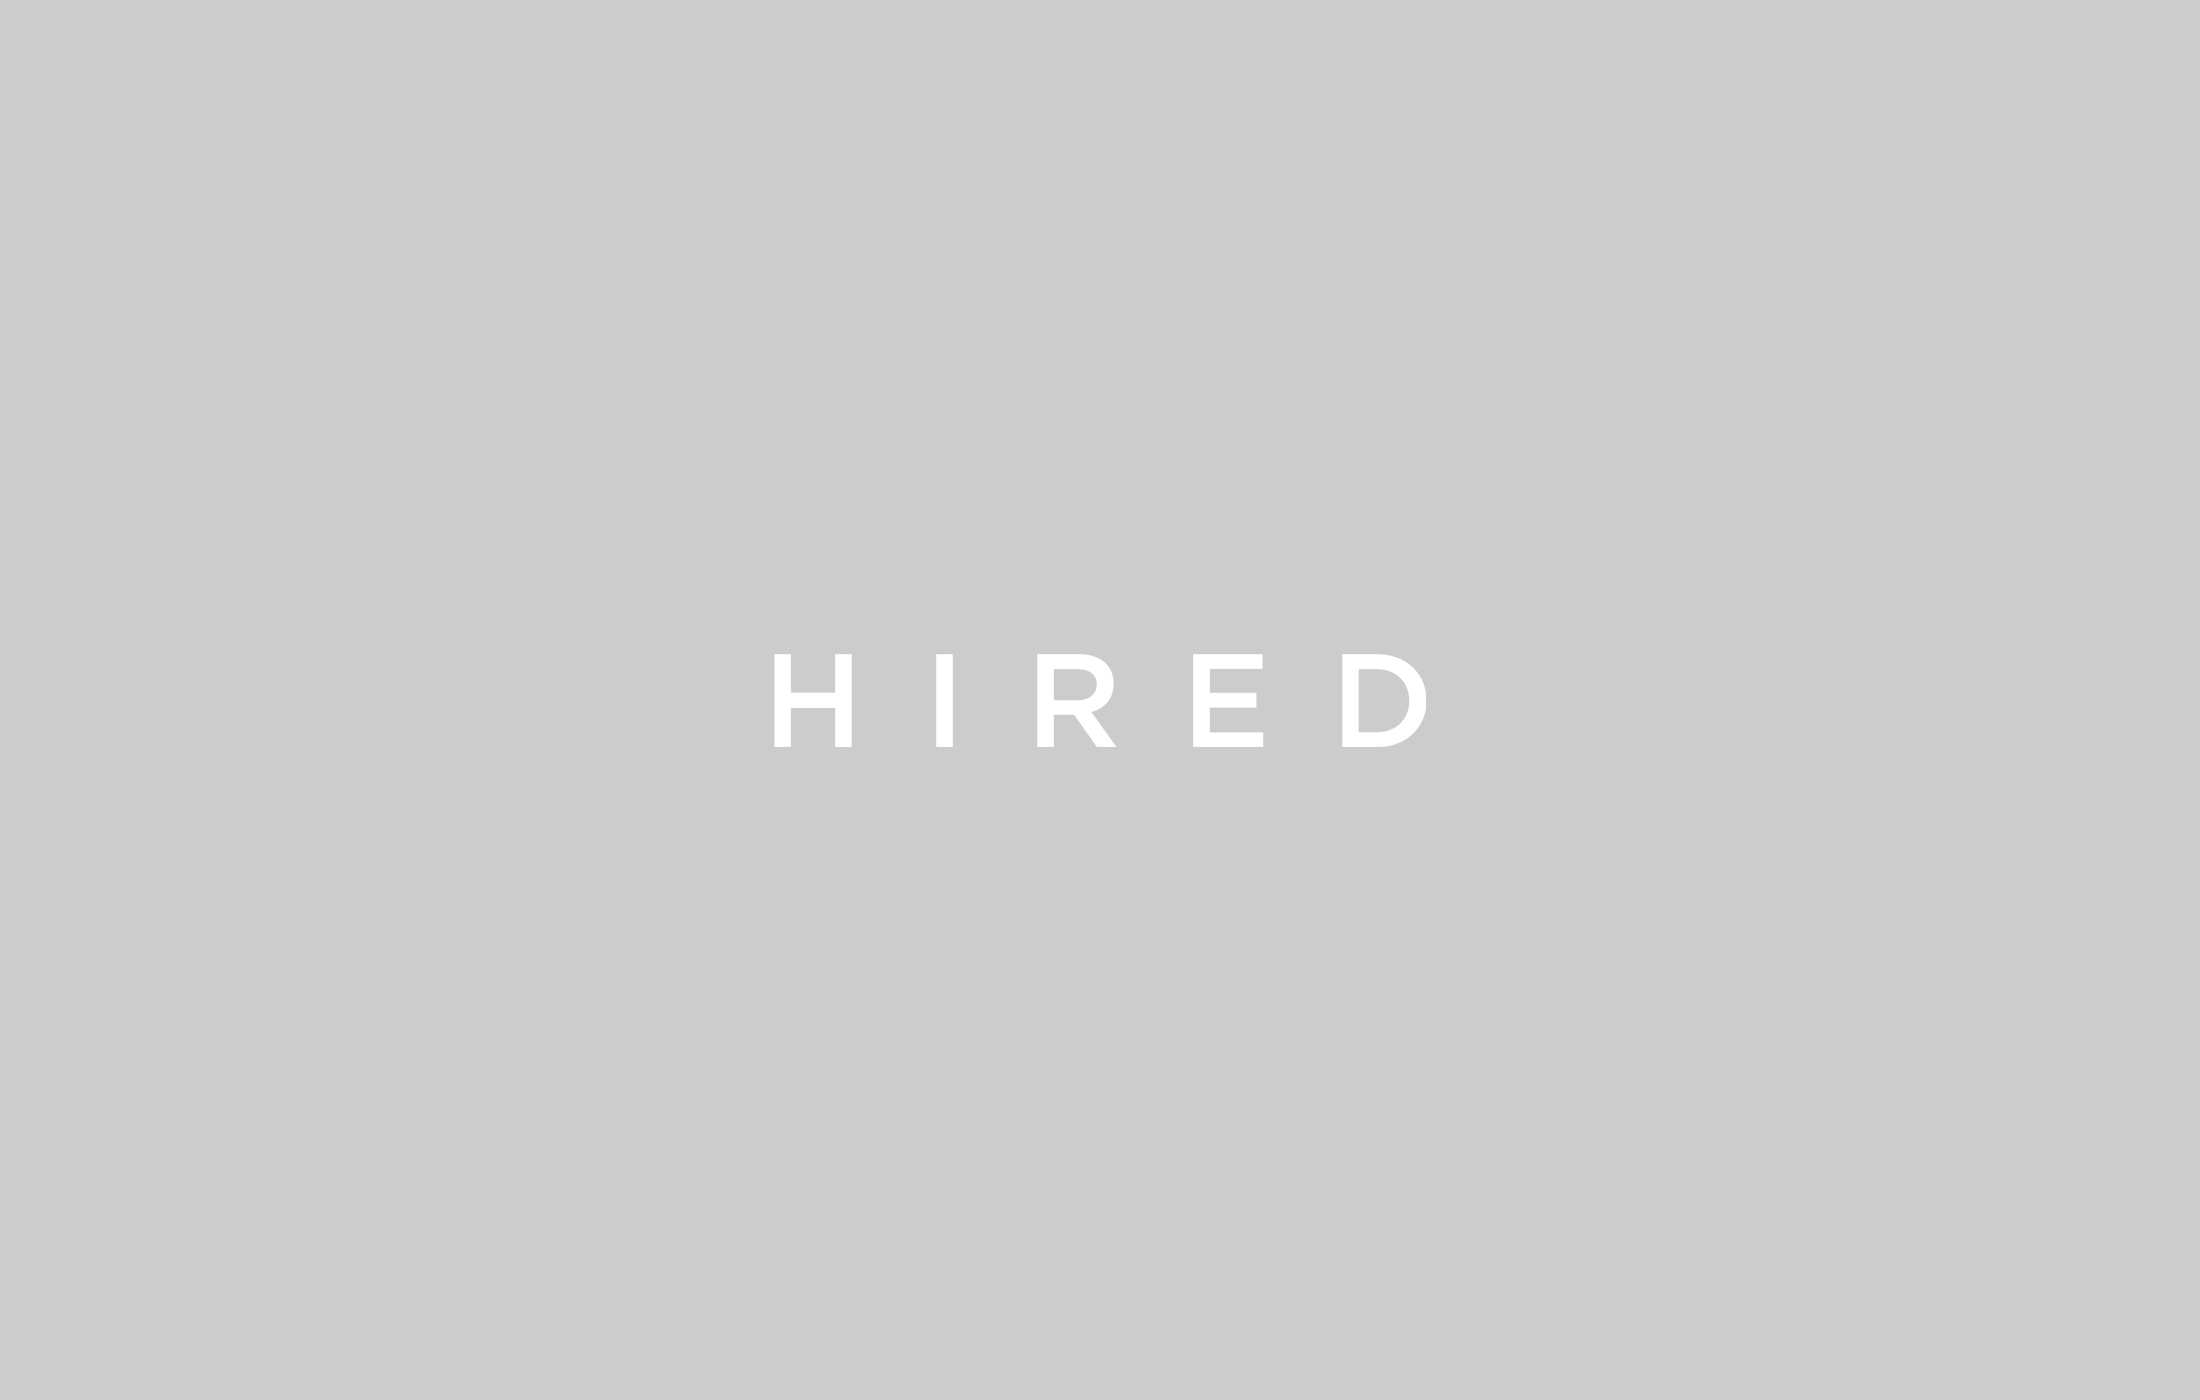 hired-lands-in-la-serves-up-5k-referral-bonus